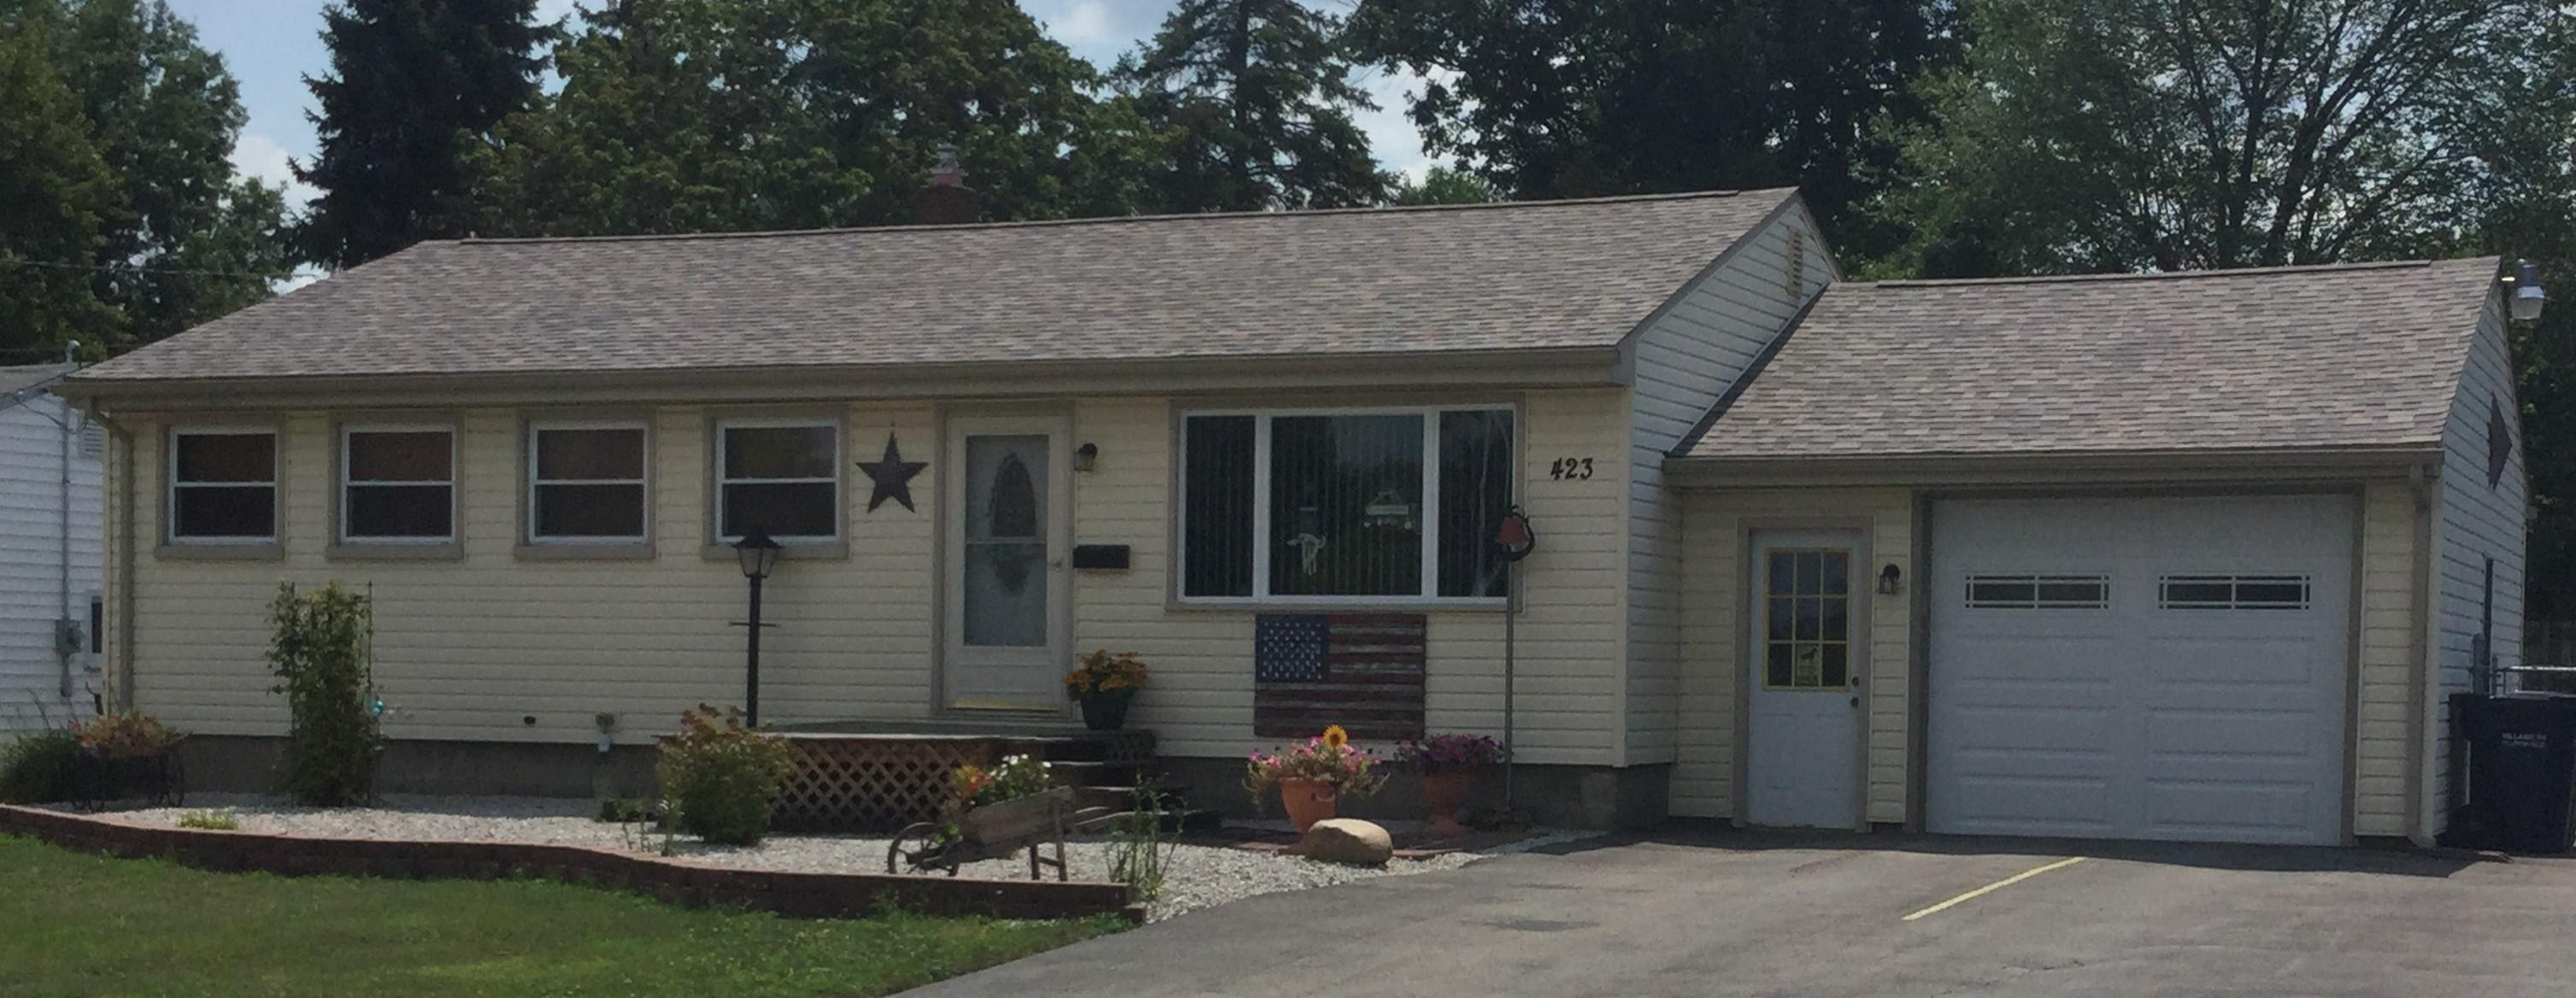 Owens Corning Duration Designer SandDune Shingles Installed on this Ranch Home in McDonald, Ohio ...